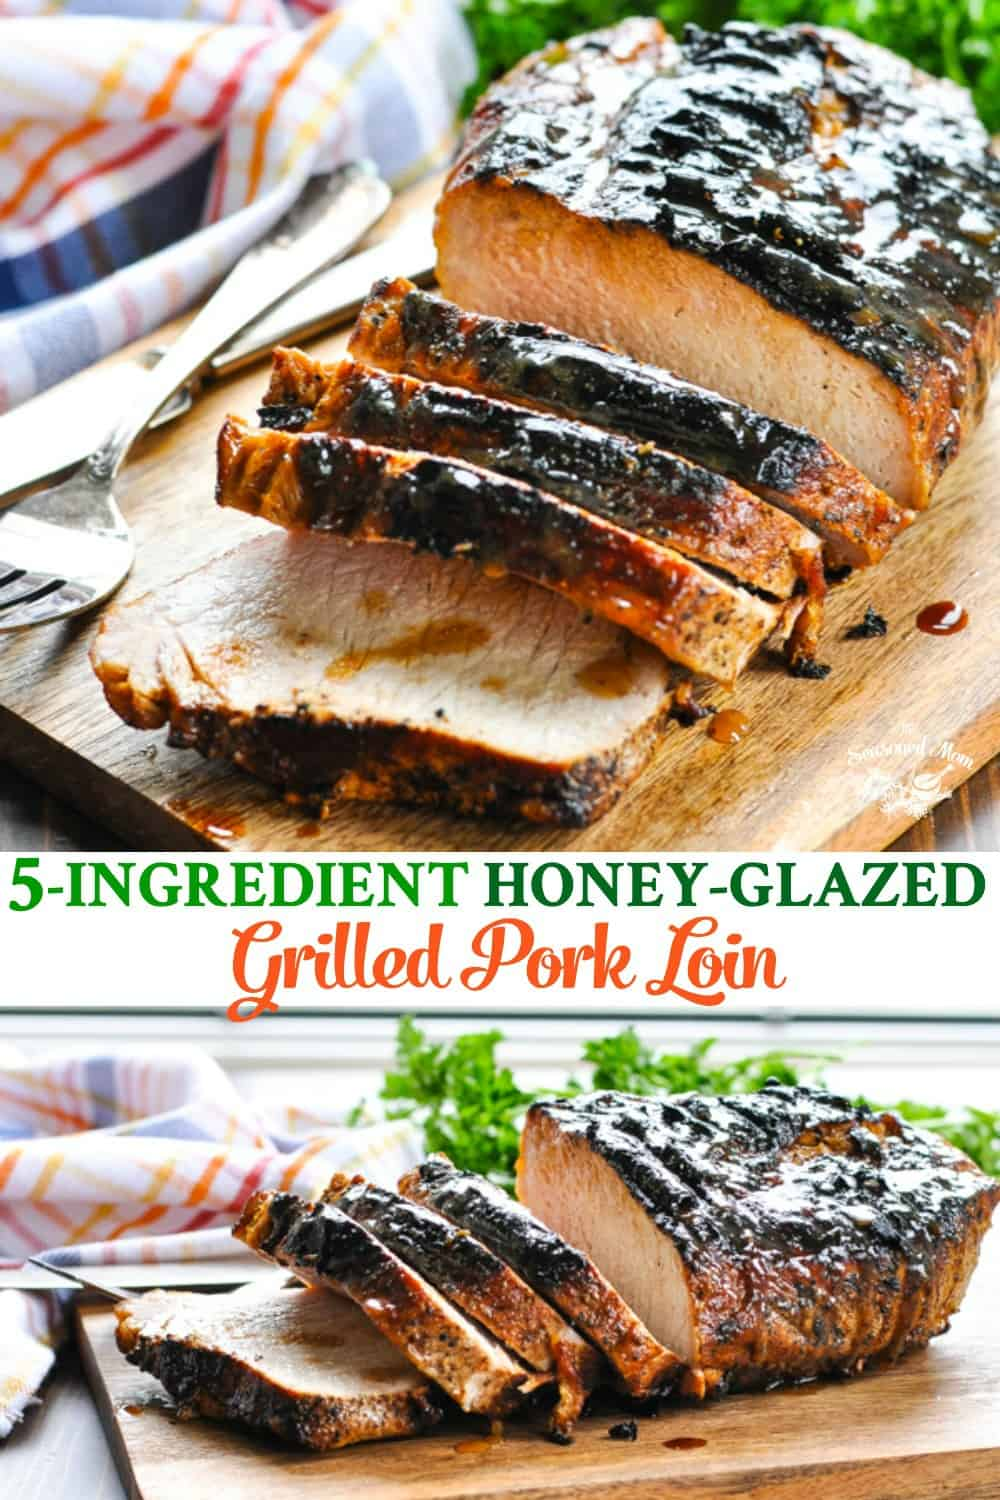 Long collage of 5 ingredient Grilled Pork Loin